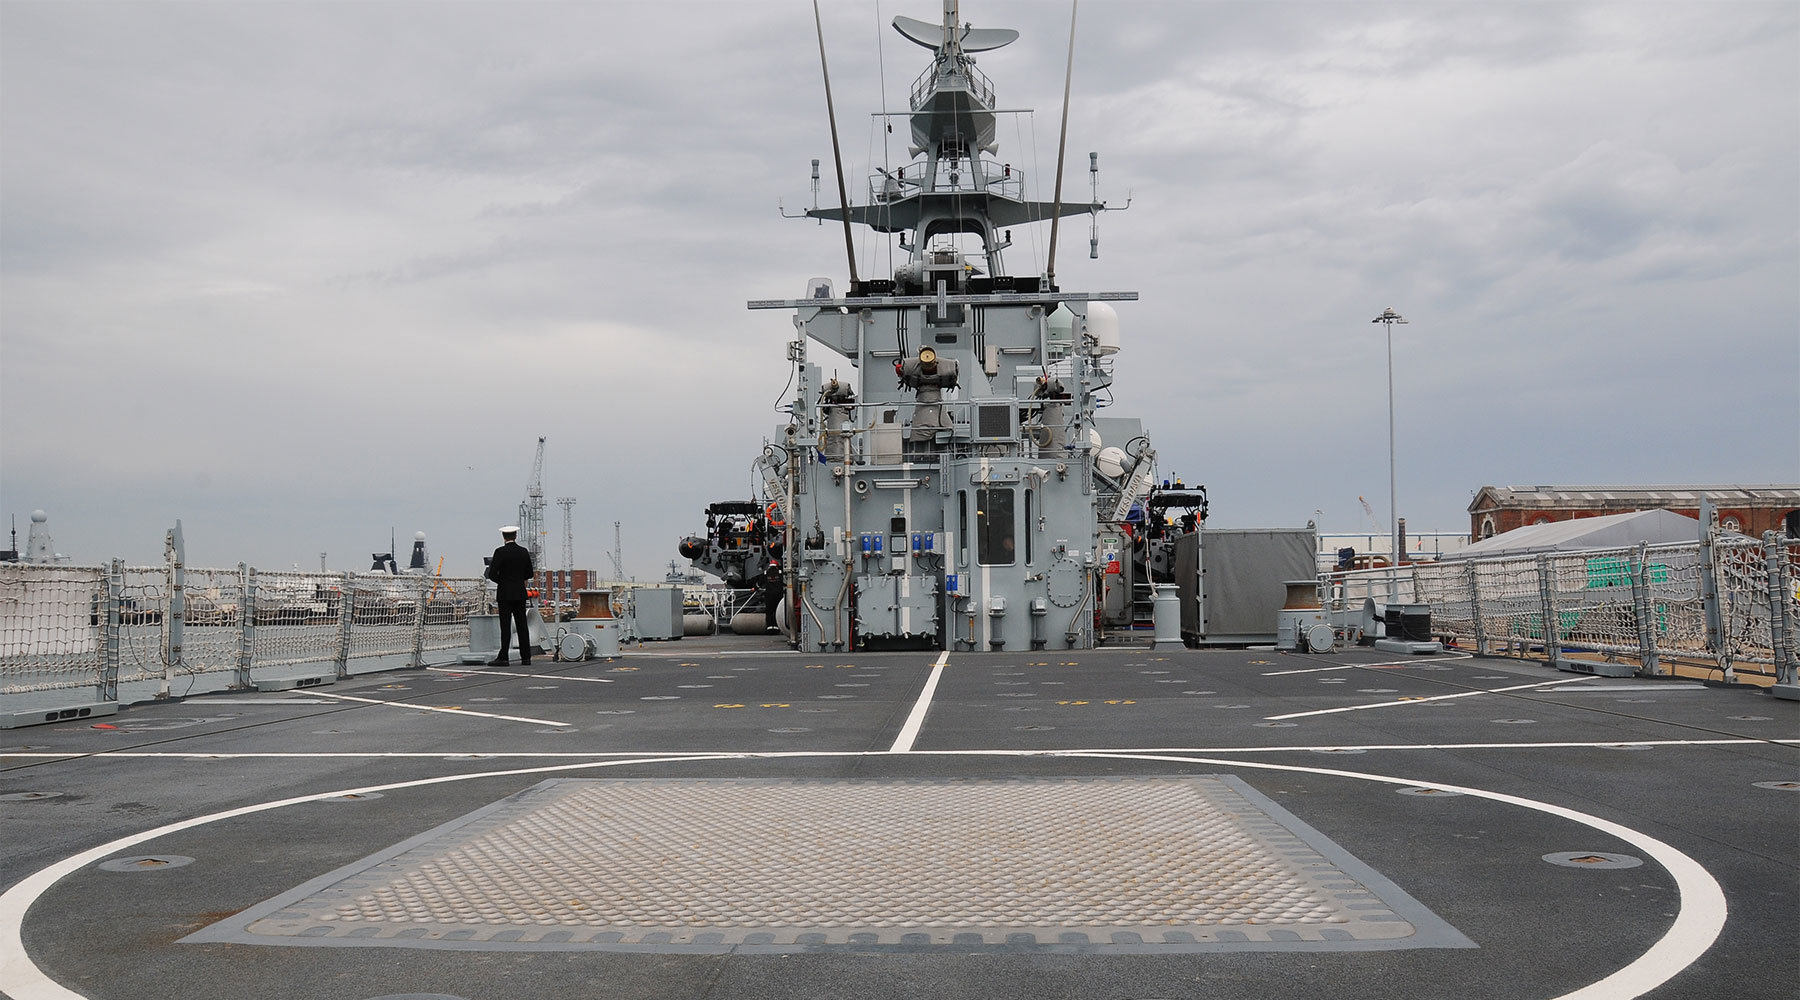 Up close with the Royal Navy's newest ship – HMS Medway